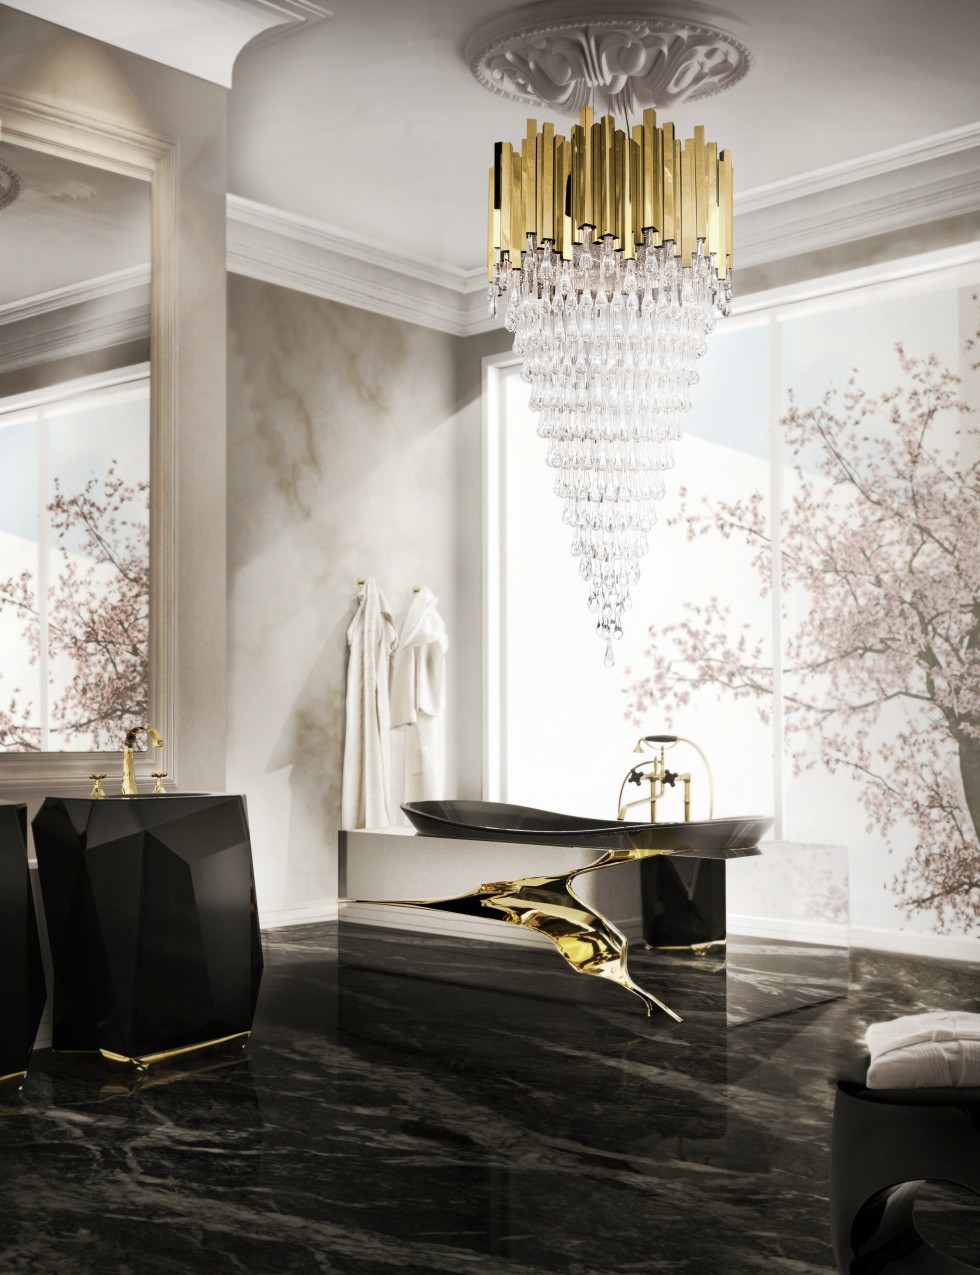 trump-chandeleir.901 bathroom Light up your bathroom with the best lighting designs trump chandeleir